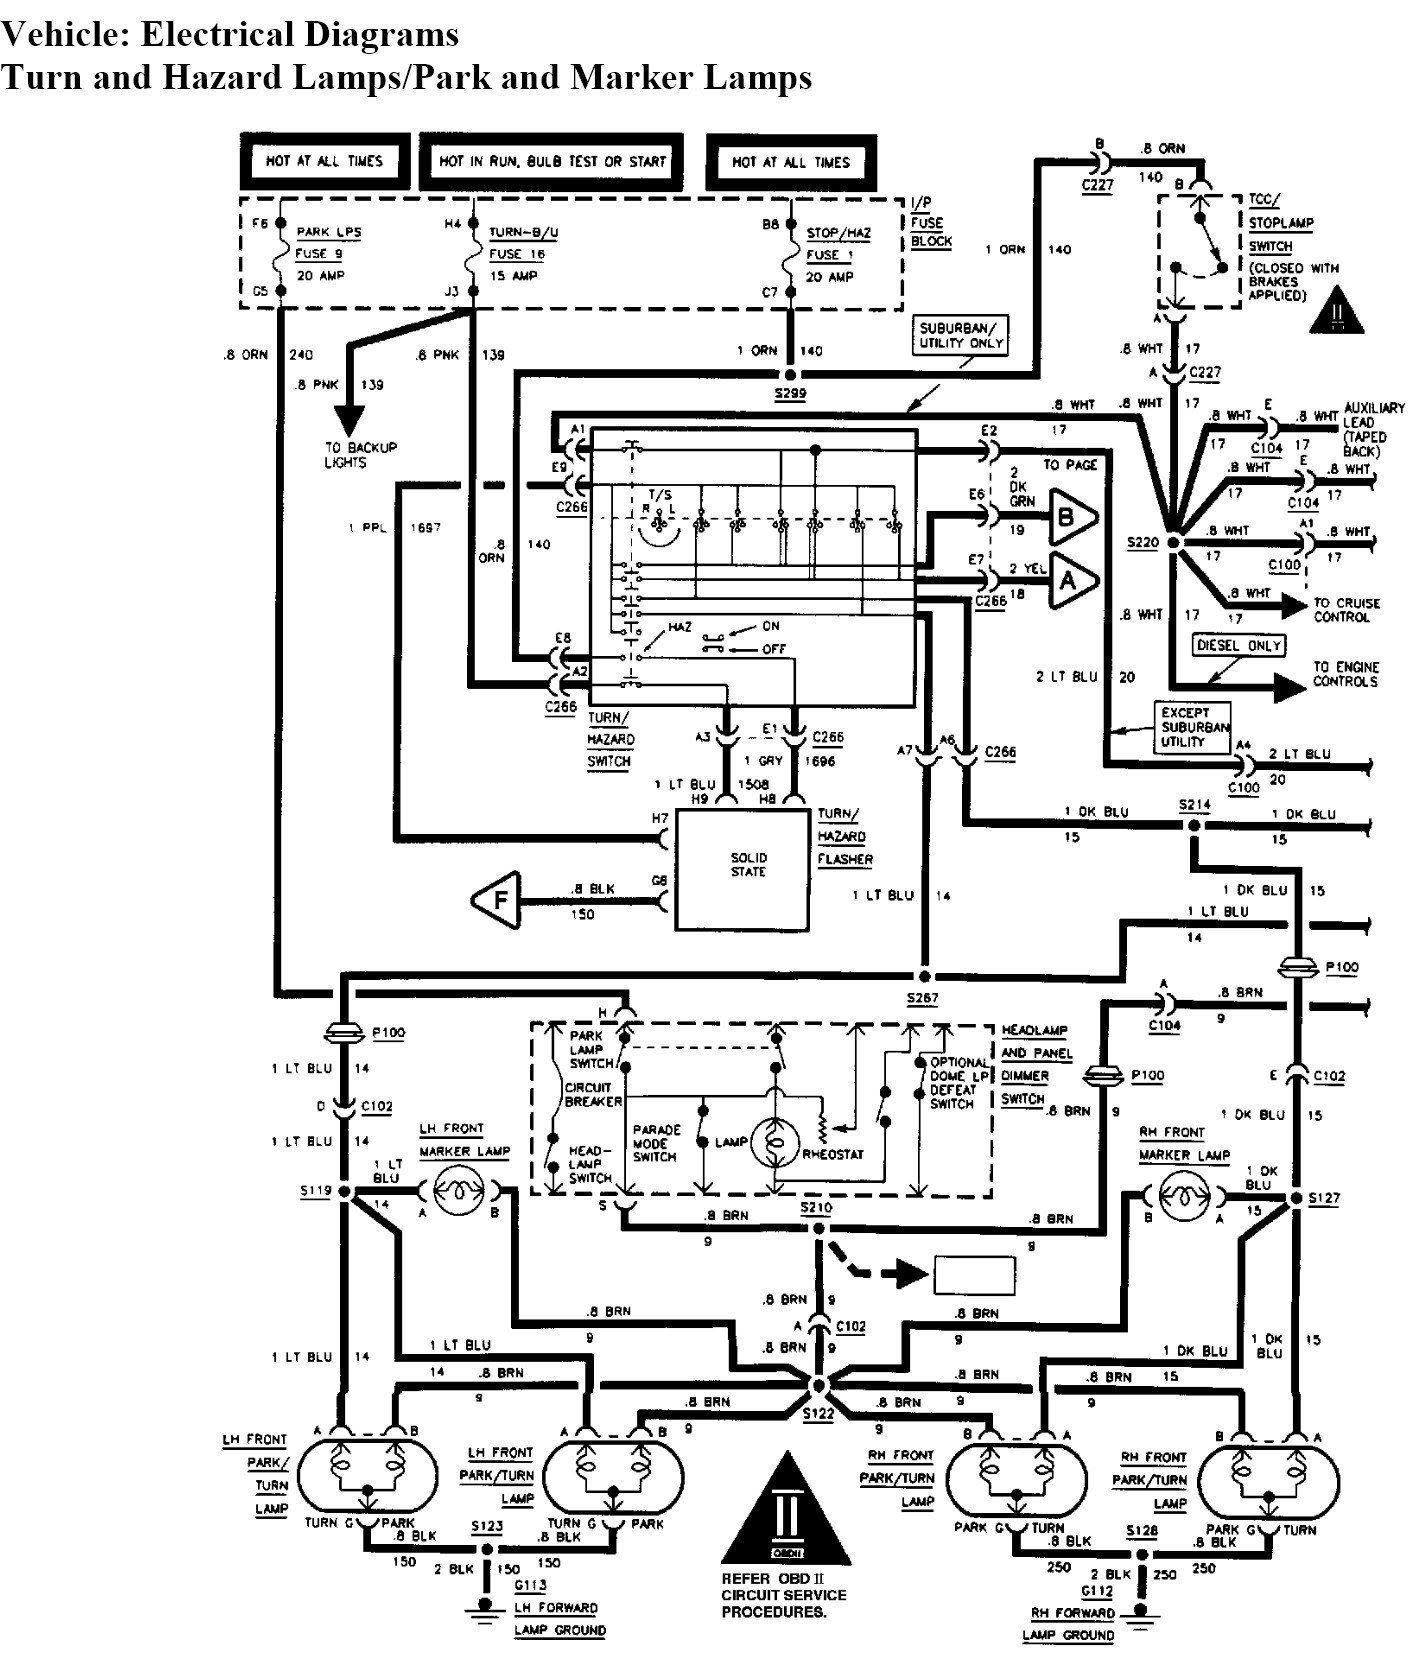 Chevy Colorado Window Motor Wiring Diagram